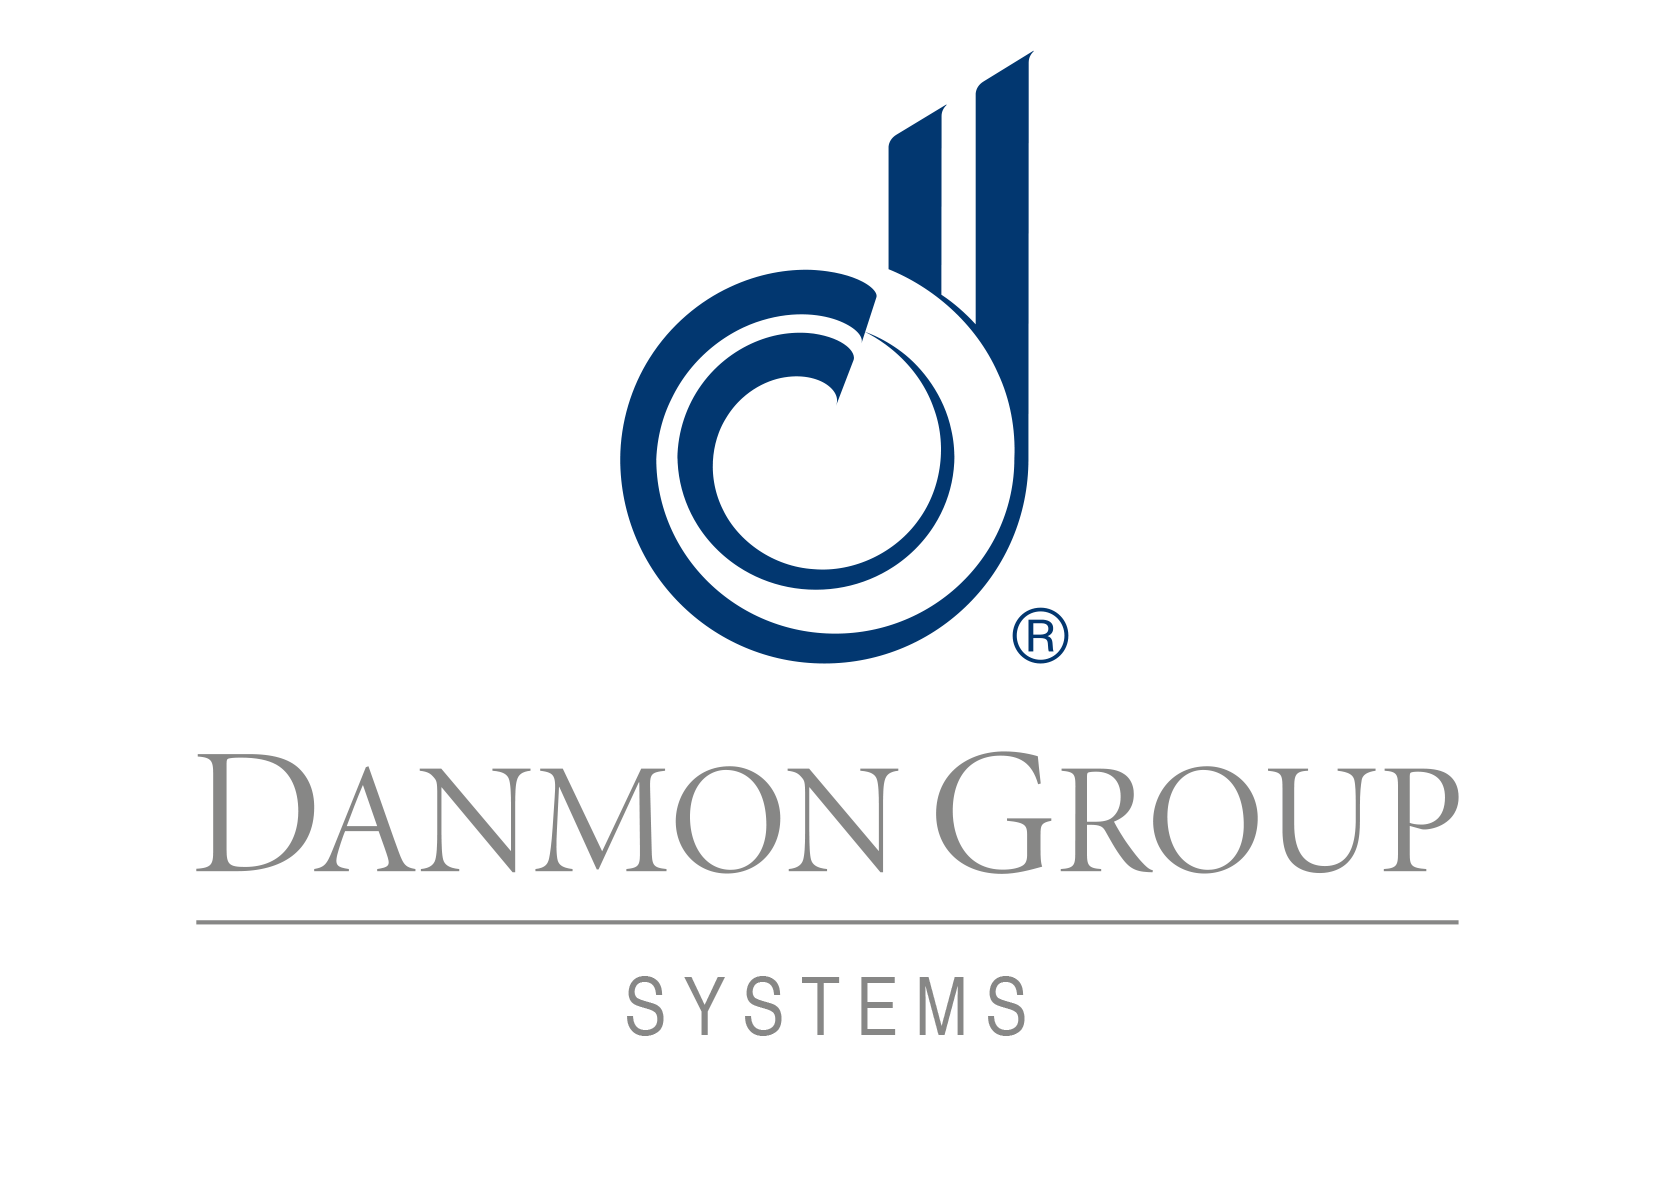 Danmon Group SYSTEMS